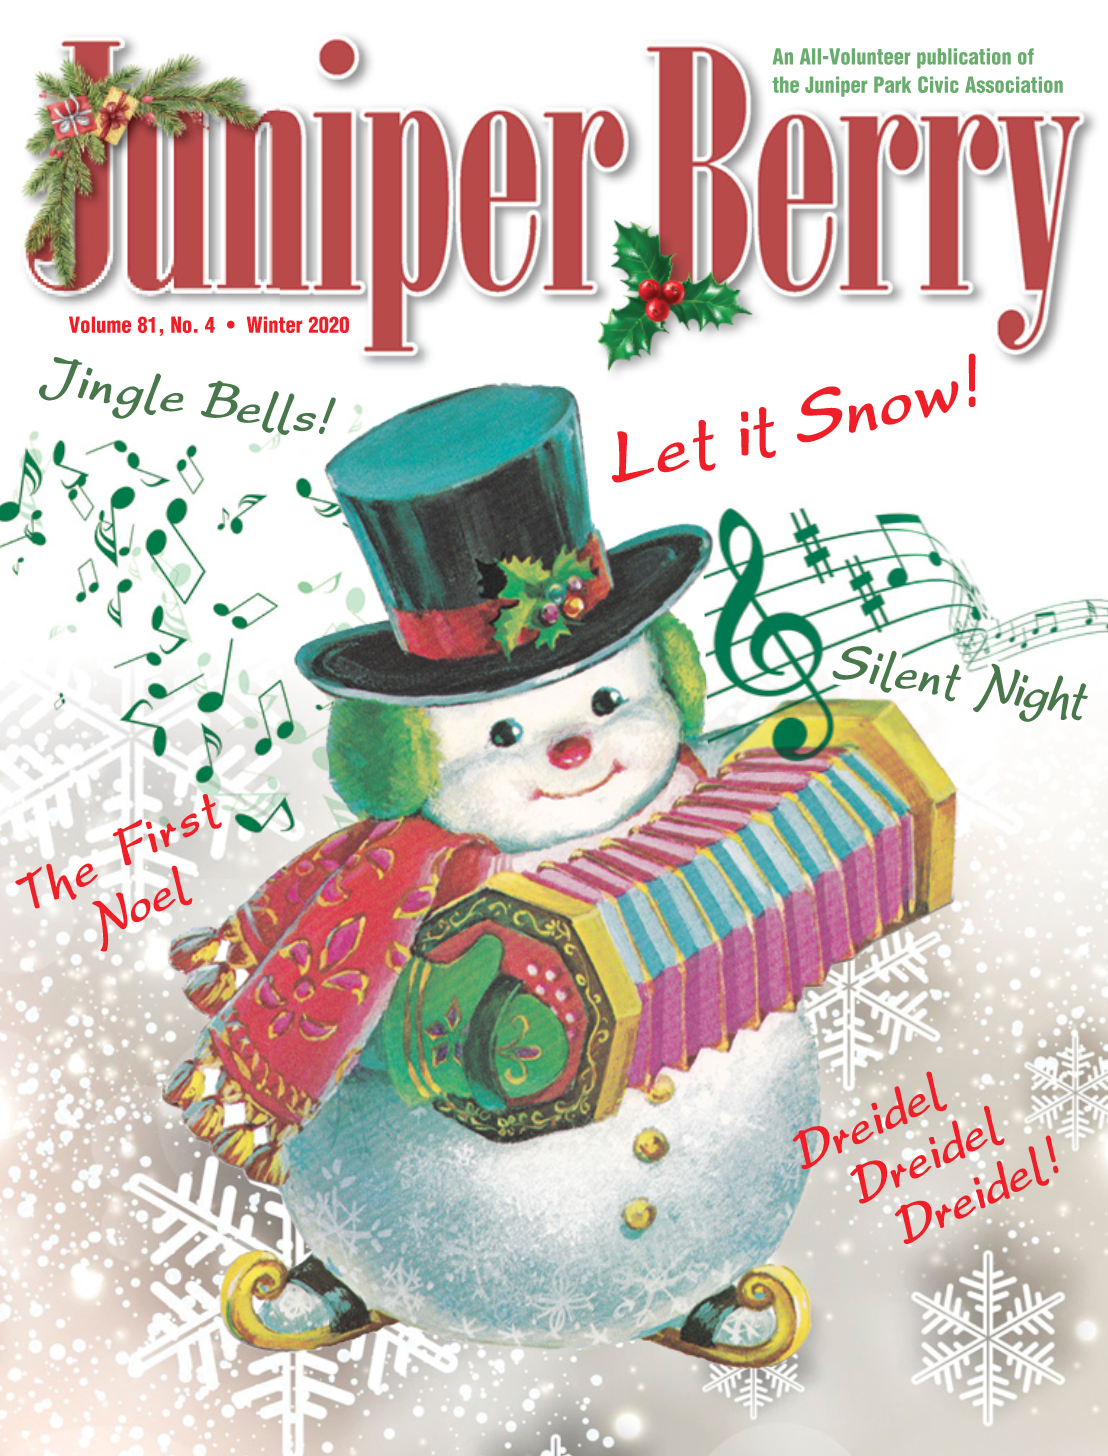 The Juniper Berry December 2020 Cover